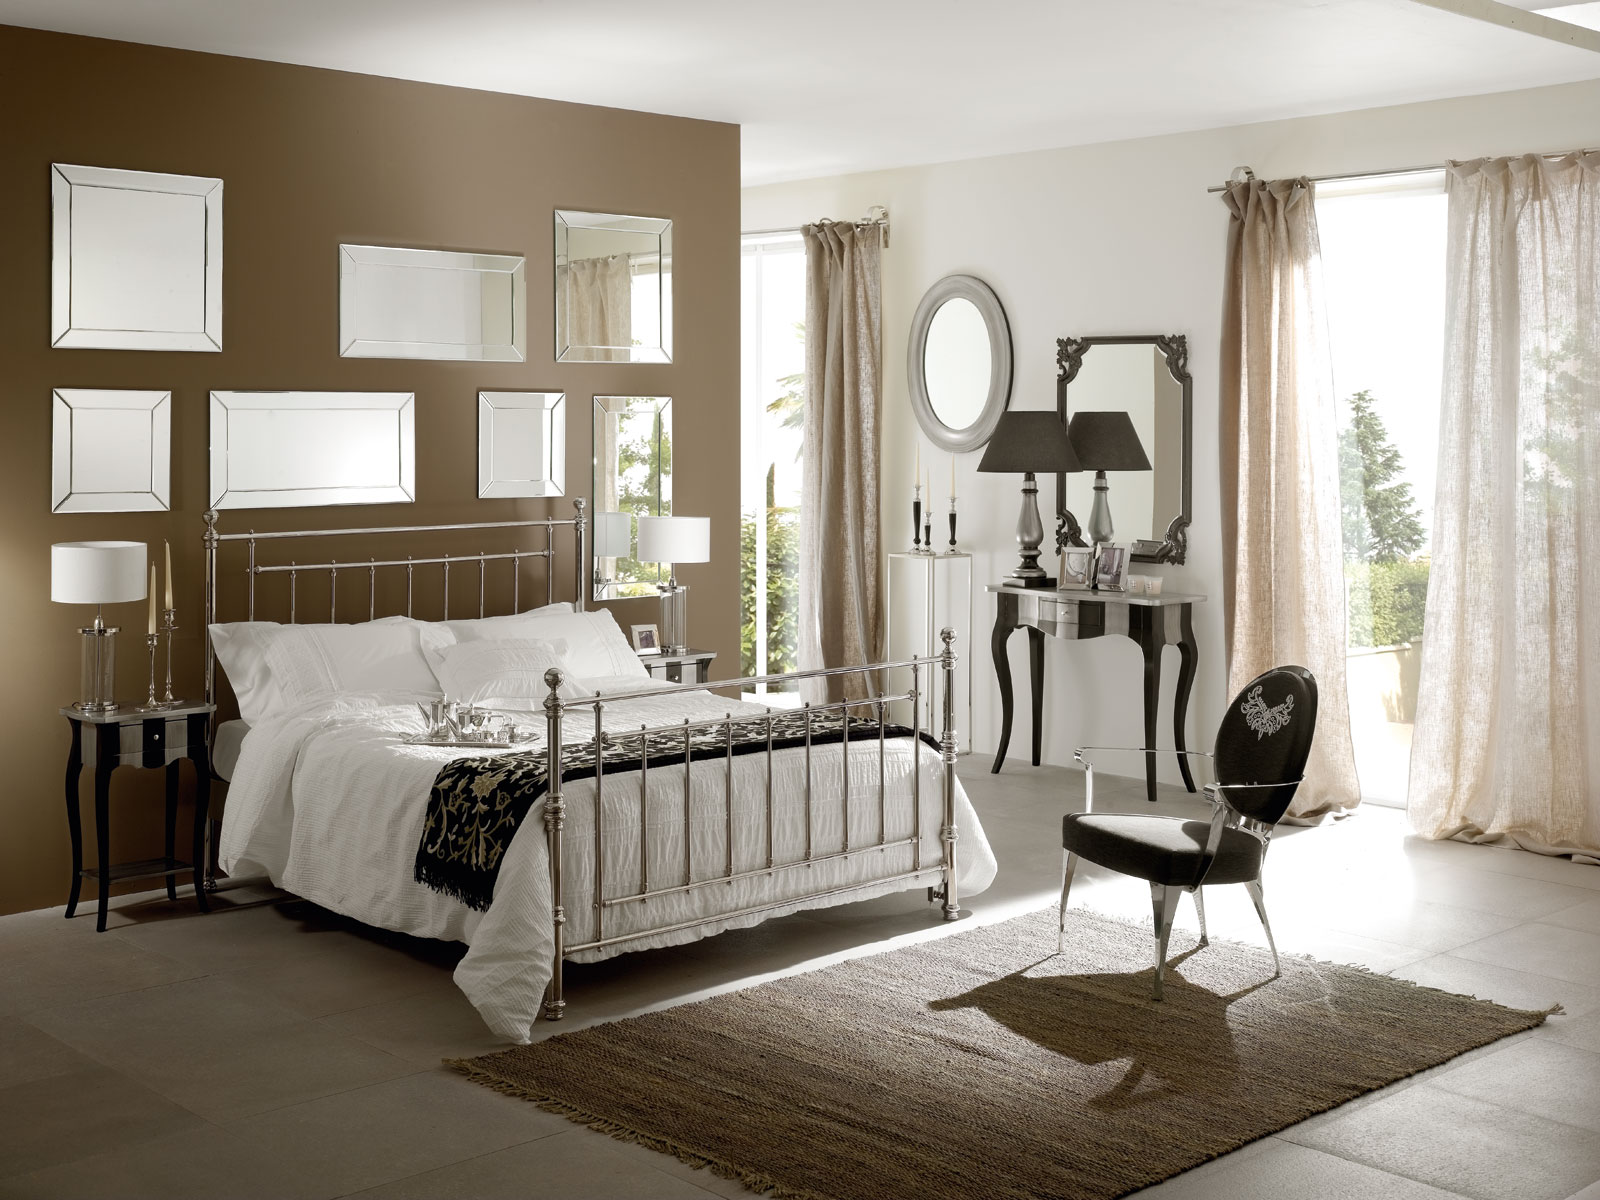 warm-brown-accent-wall-color-scheme-of-modern-teenage-bedroom-design-with-mirrored-wall-decorative-over-metal-bed-frame-and-cool-black-fabric-armchair-on-brown-carpet-floor